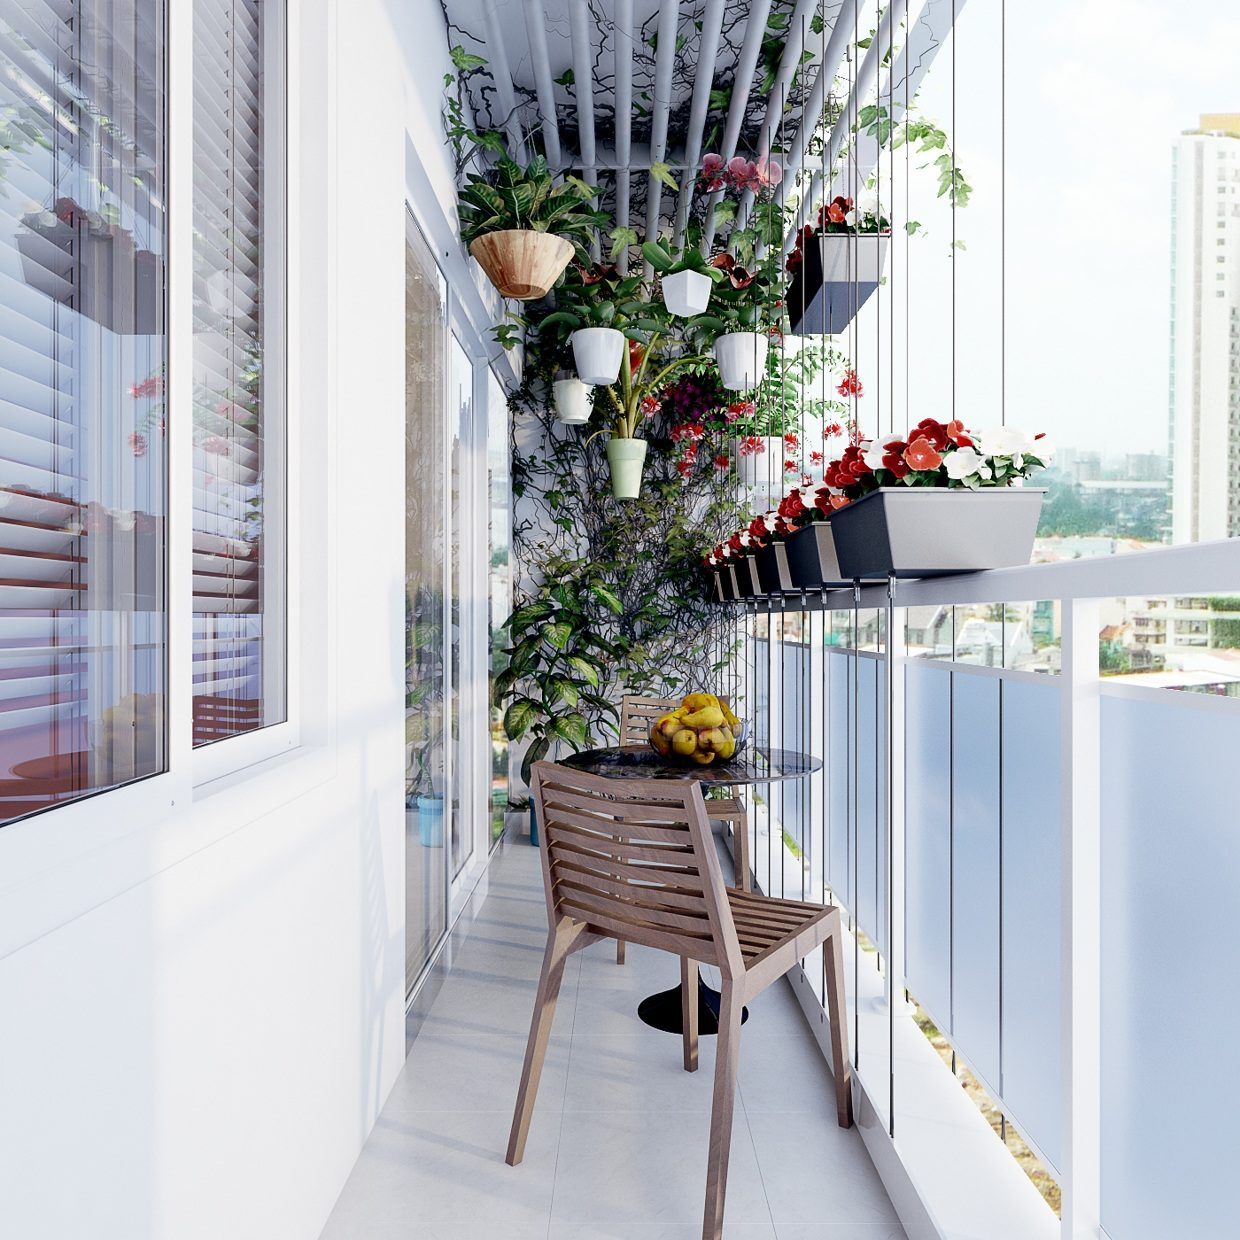 Balcony Garden Design balcony privacy 4 634x479 15 stunning roof top balcony garden design that will surprise you The Hanging Garden